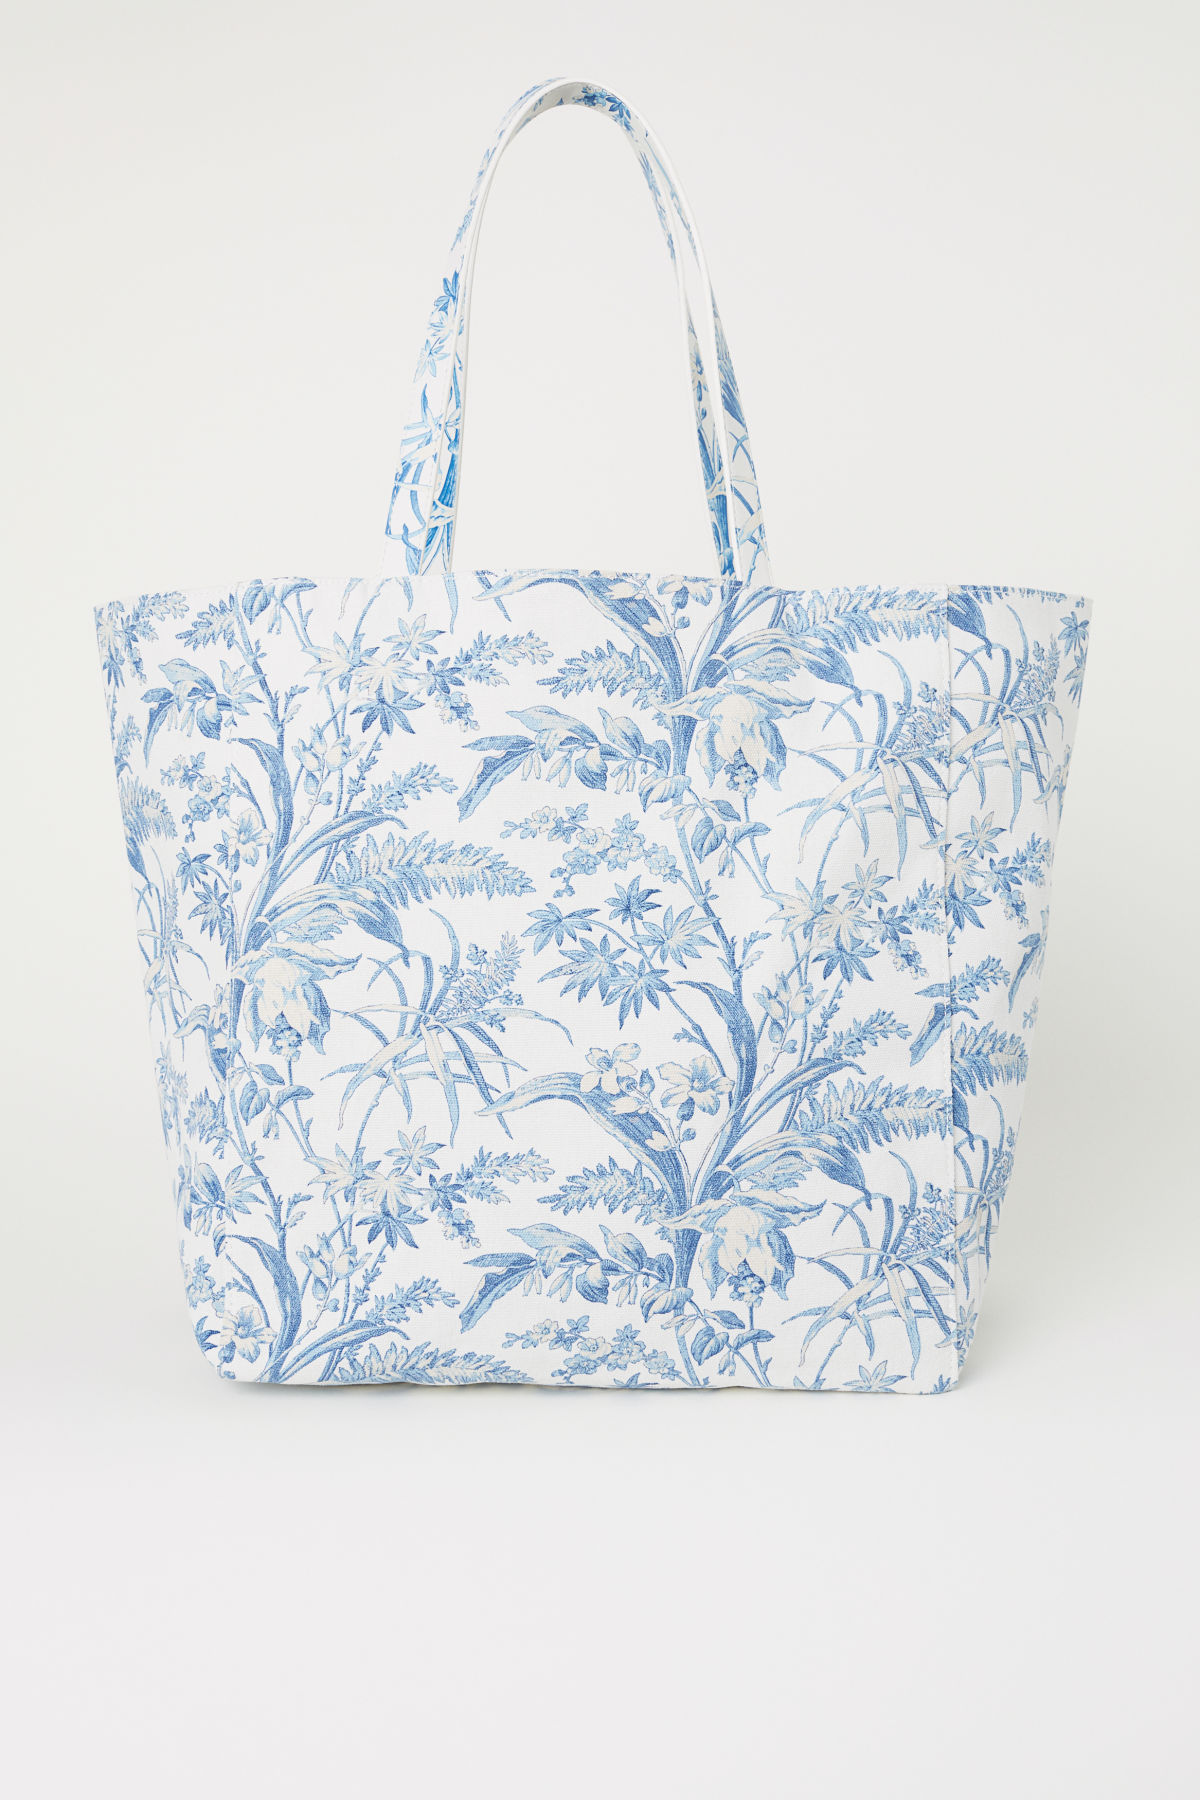 Blue and White Toile Canvas Shopper Tote